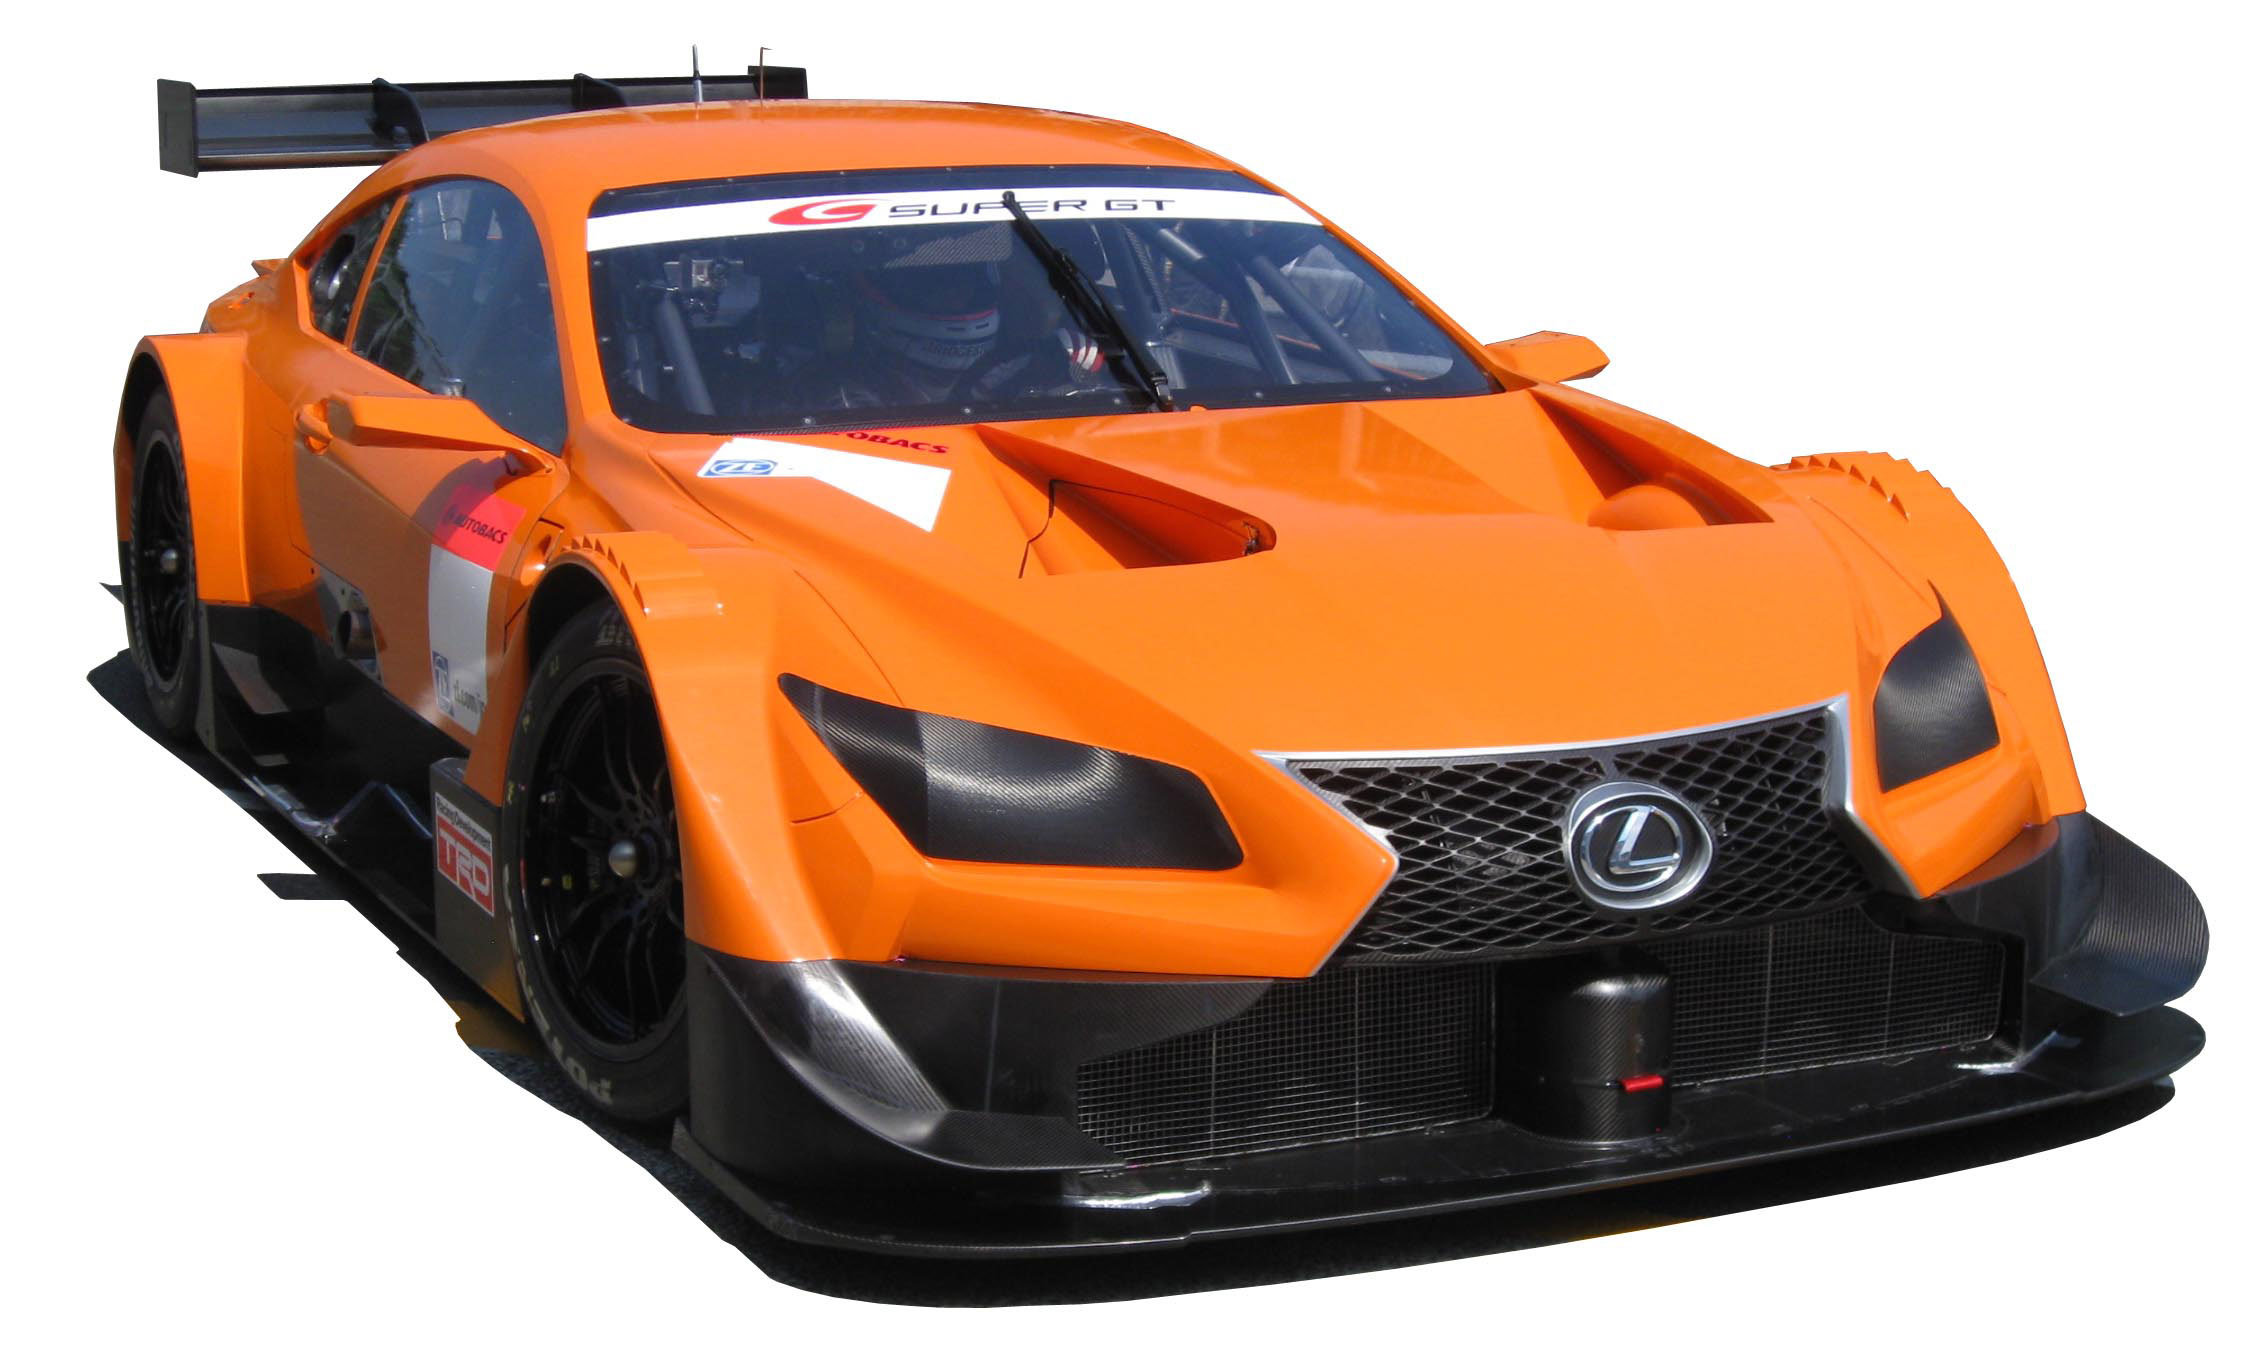 New Race Car To Compete In Japanese Super Gt Series Journal